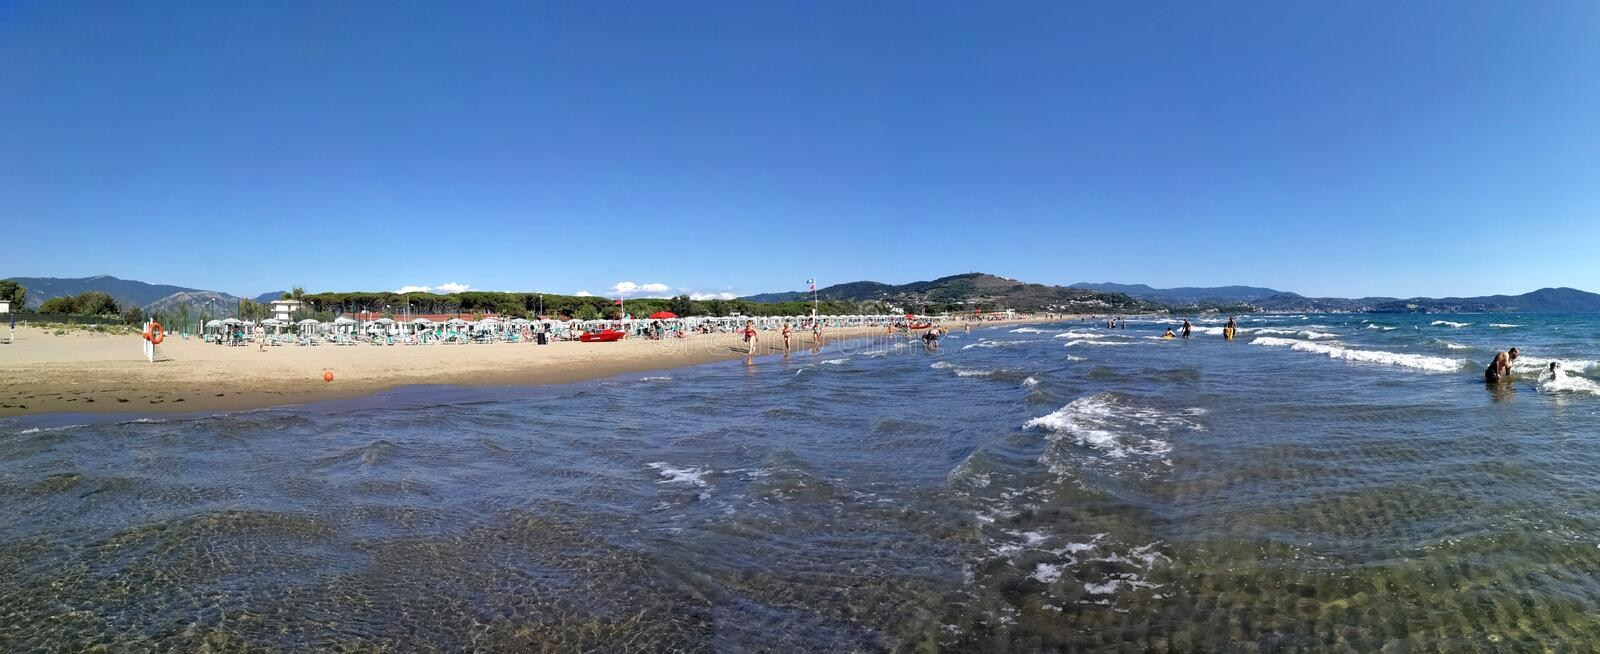 Capaccio - Overview of the beach from the sea stock photography